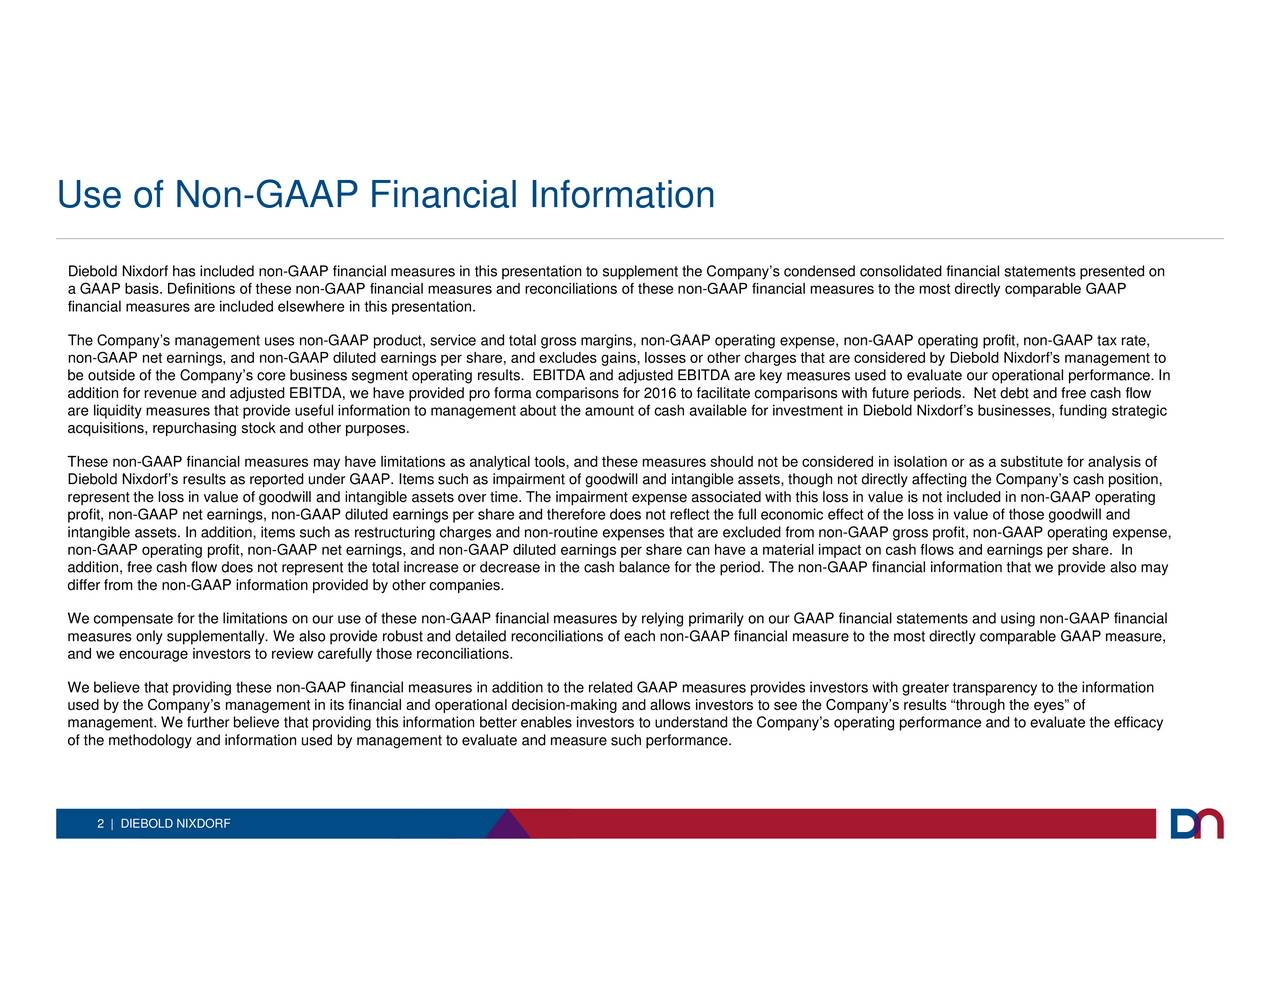 opt. Footer profit, non-GAAP tax rate, ate our operational performance. In d financial stby Diebold Nixdorfs management tod earnit directly comparable GAAP measure,f periods. Net debt and free cash flow eater transparency to the informationficacy ld Nixdorfly affecting the Companys cash position, lue is not included in non-GAAP operatingvide also may or other charges that are considered primarily on our GAAP financial statements and using non-GAAP financial reflect the full economic effect of the loss in value of those goodwill and non-GAAP operating expense, non-GAAP operatingdered in isol these non-GAAP financial measures to the most directly compaGAAP measures provides investors with gr ount of cash available for investment in Diebo a comparisons for 2016 to facilitate comparisons with futurend allows investors to see the Companys res s. EBITDA and adjusted EBITDA are key measures used to evalu financial measures by relying as impairment of goodwill and intangible assets, though not direct on better enables investors to understand the Companys operating pe charges and non-routine expenses that are excluded from non-GAAP gross profit, non-GAAP operating expense, ngs per share, and excludes gains, losses easures in this presentation itationsearnings per share and therefore does notshare can have a material impact on cash fl oduct, service and total gross margins, financial measures and reconciliations of nancial measures in addition to the related ovide robust and detailed reconciliations of each non-GAAP financial measure to the mos sewhere in this presentation. on provided by other companies. stock and other purposes. 2 | DIEBOLD NIXDORF Diea GfnAPcThnmobeaoutiiacqoftrDiereplrintnon-GAAP opermeaand weeenbmluof the methodology and information used by management to evaluate and measure such performance. fin Use of Non-GAAP Financial Information